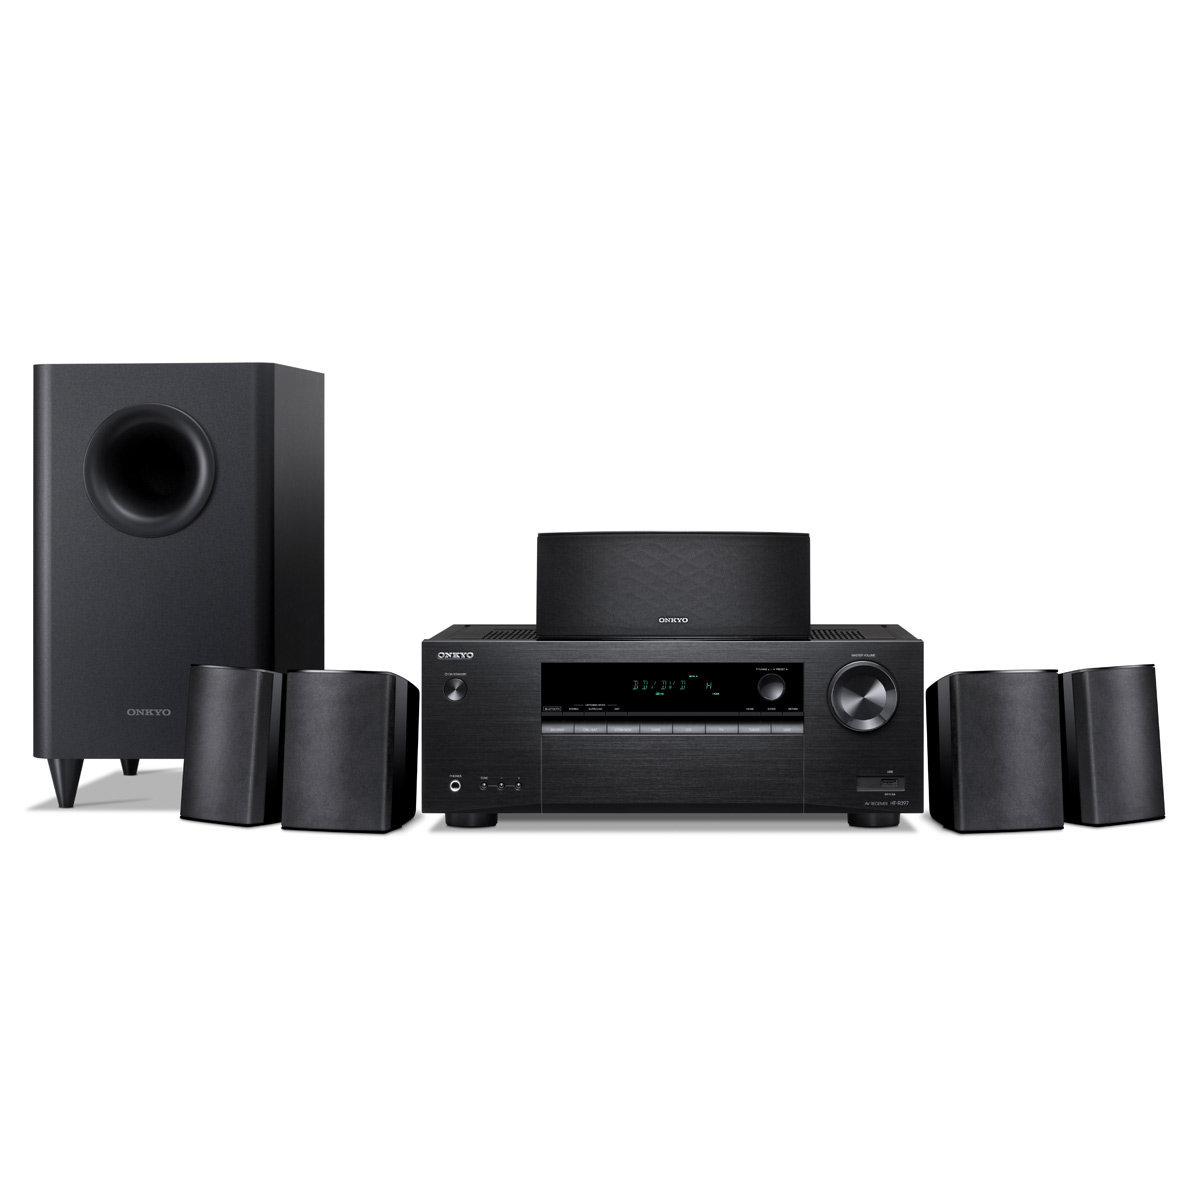 Onkyo HTS3900 51 Channel Home Theater ReceiverSpeaker